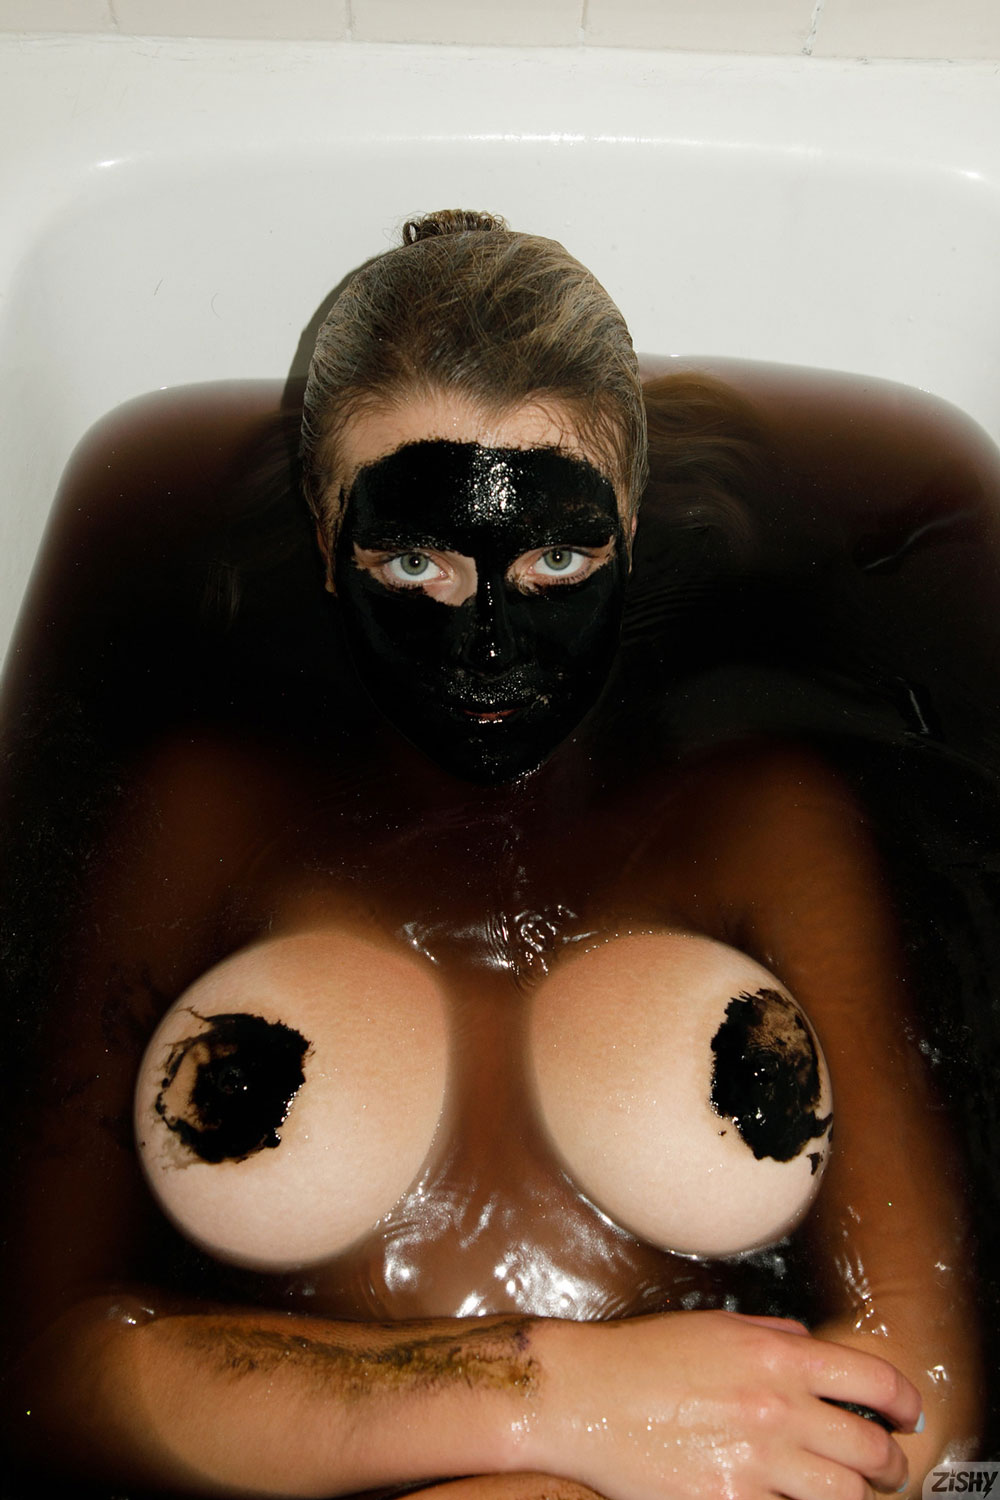 Zishy: Gabbie Carter with a Face Mask 5